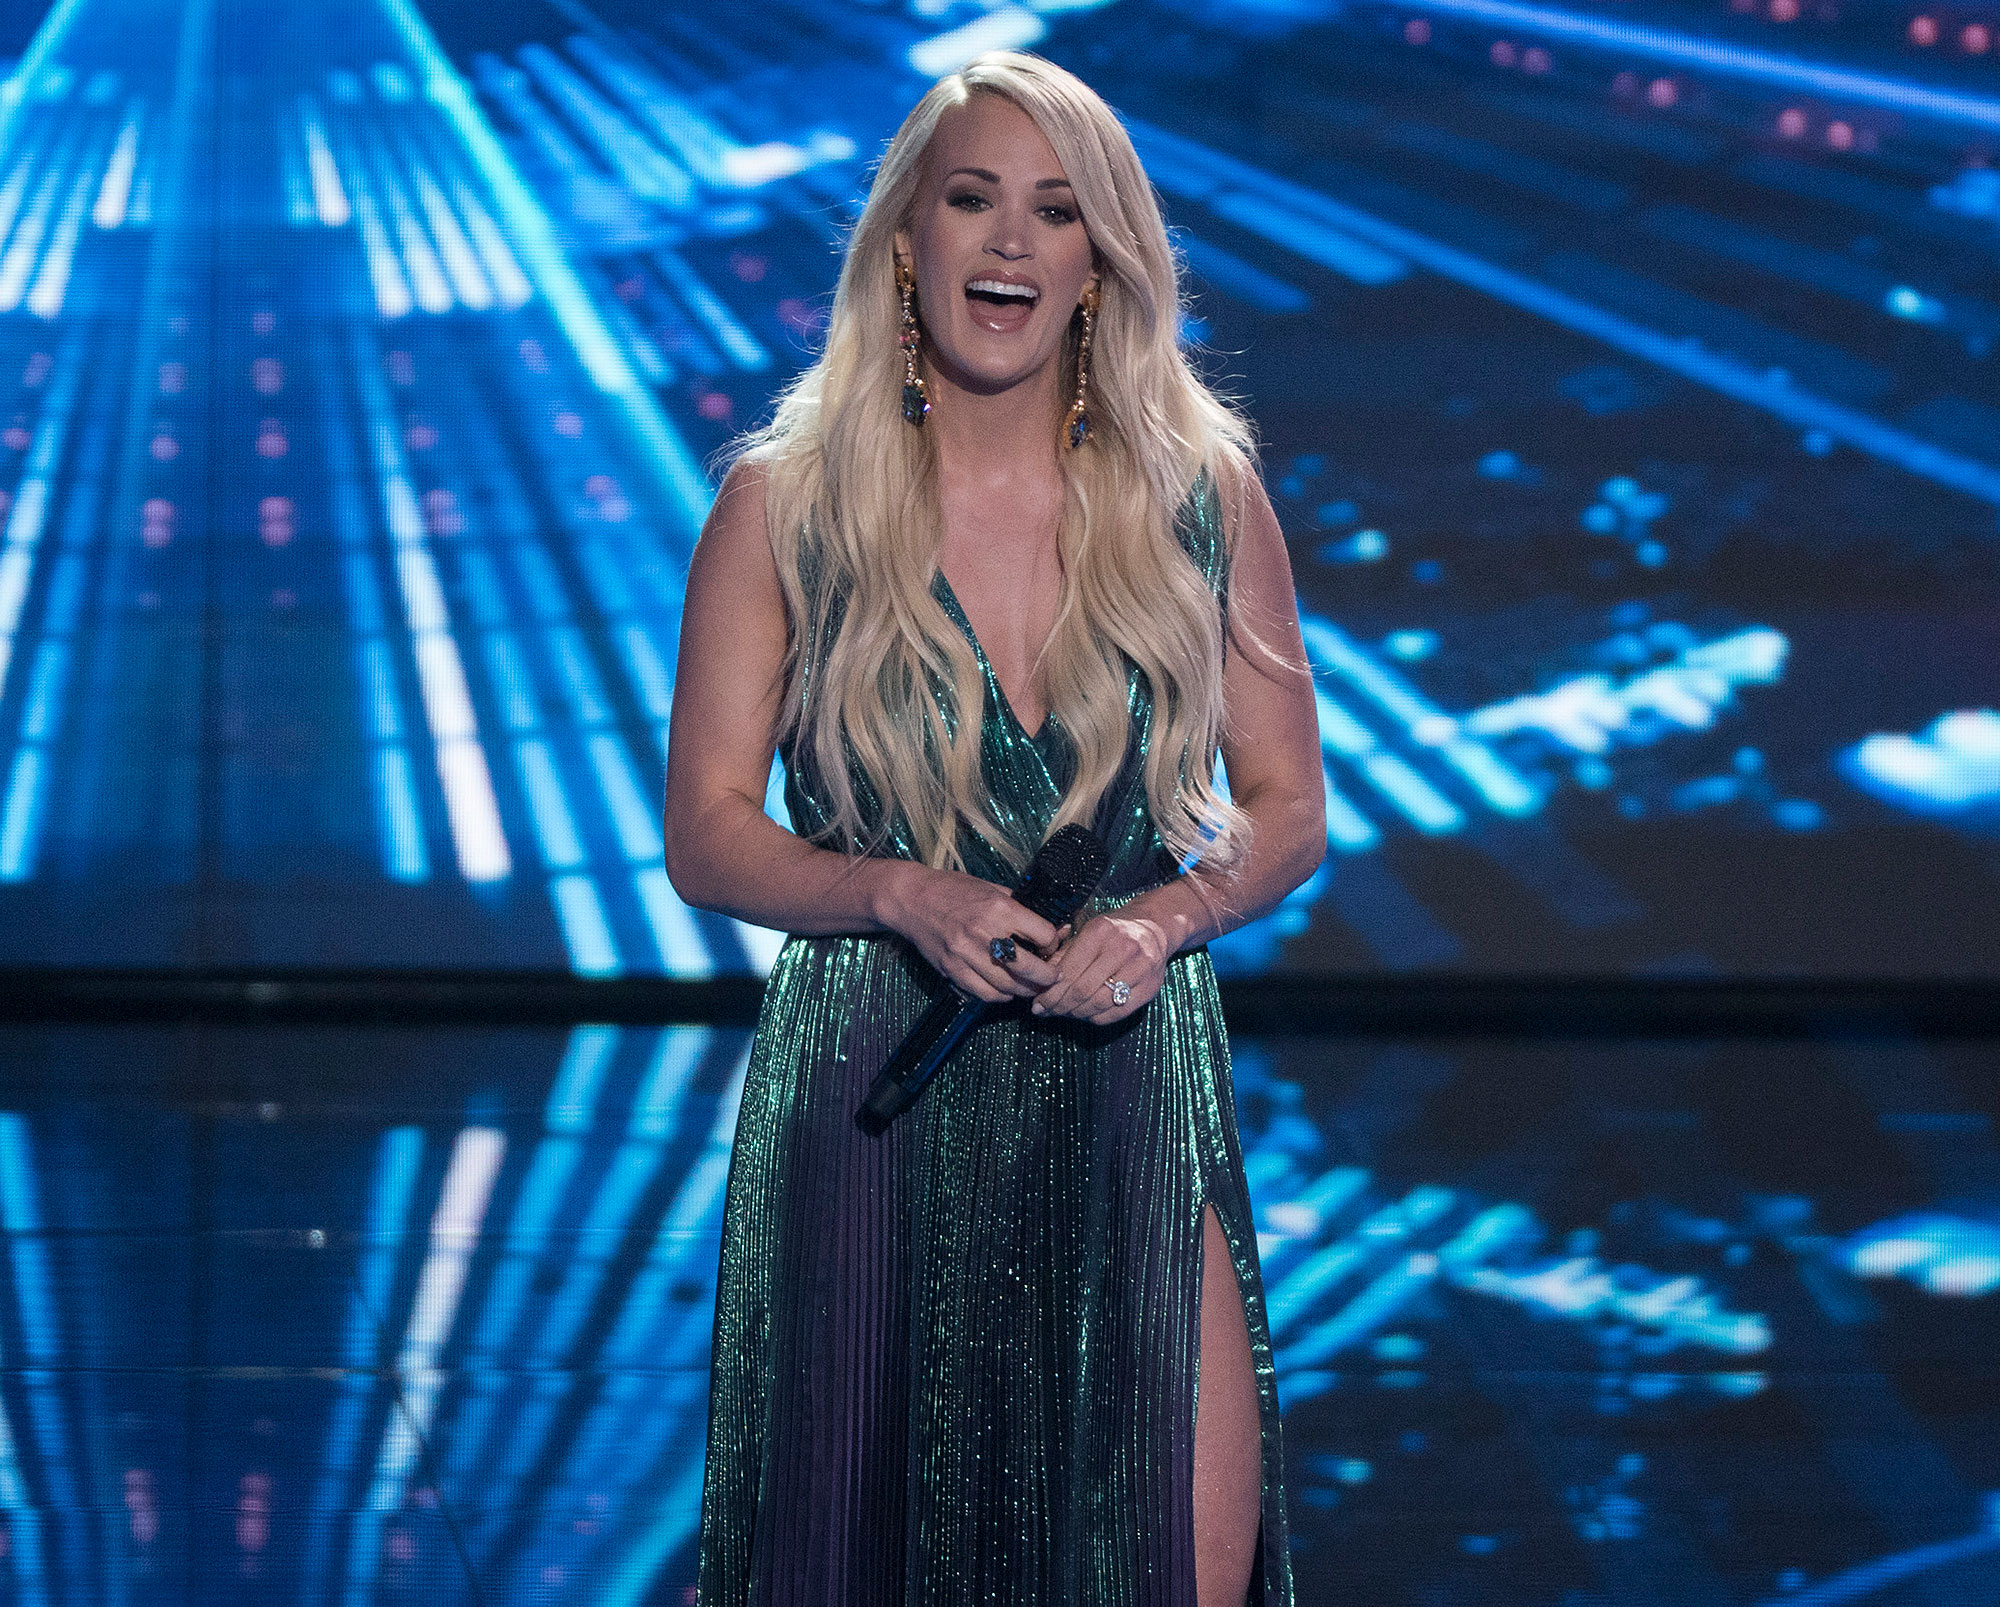 Carrie Underwood Returns To American Idol After Facial Injury With